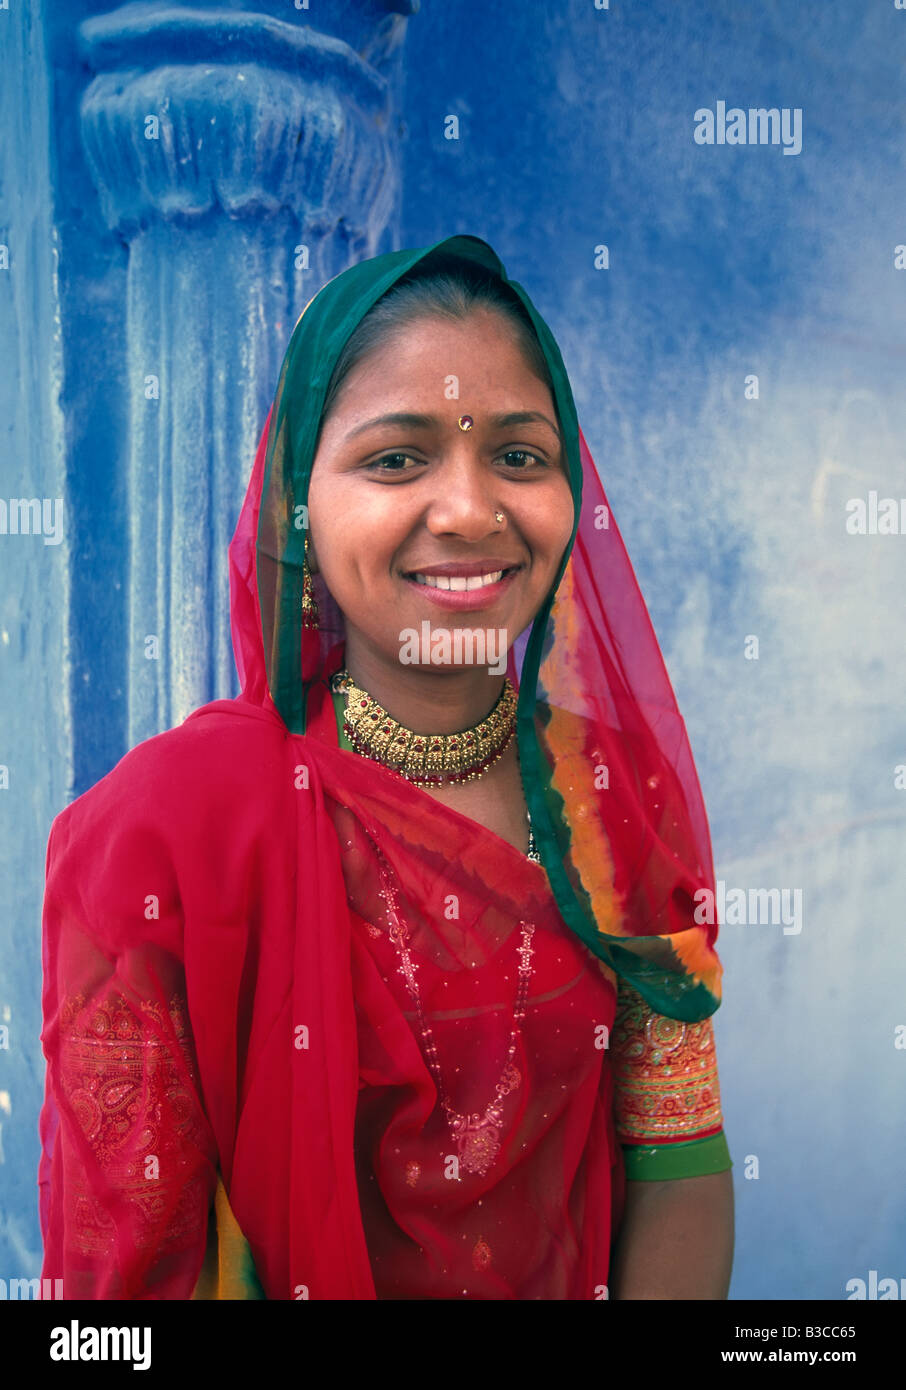 Portrait of a local woman in the Blue City Jodhpur Rajasthan State India Asia Stock Photo